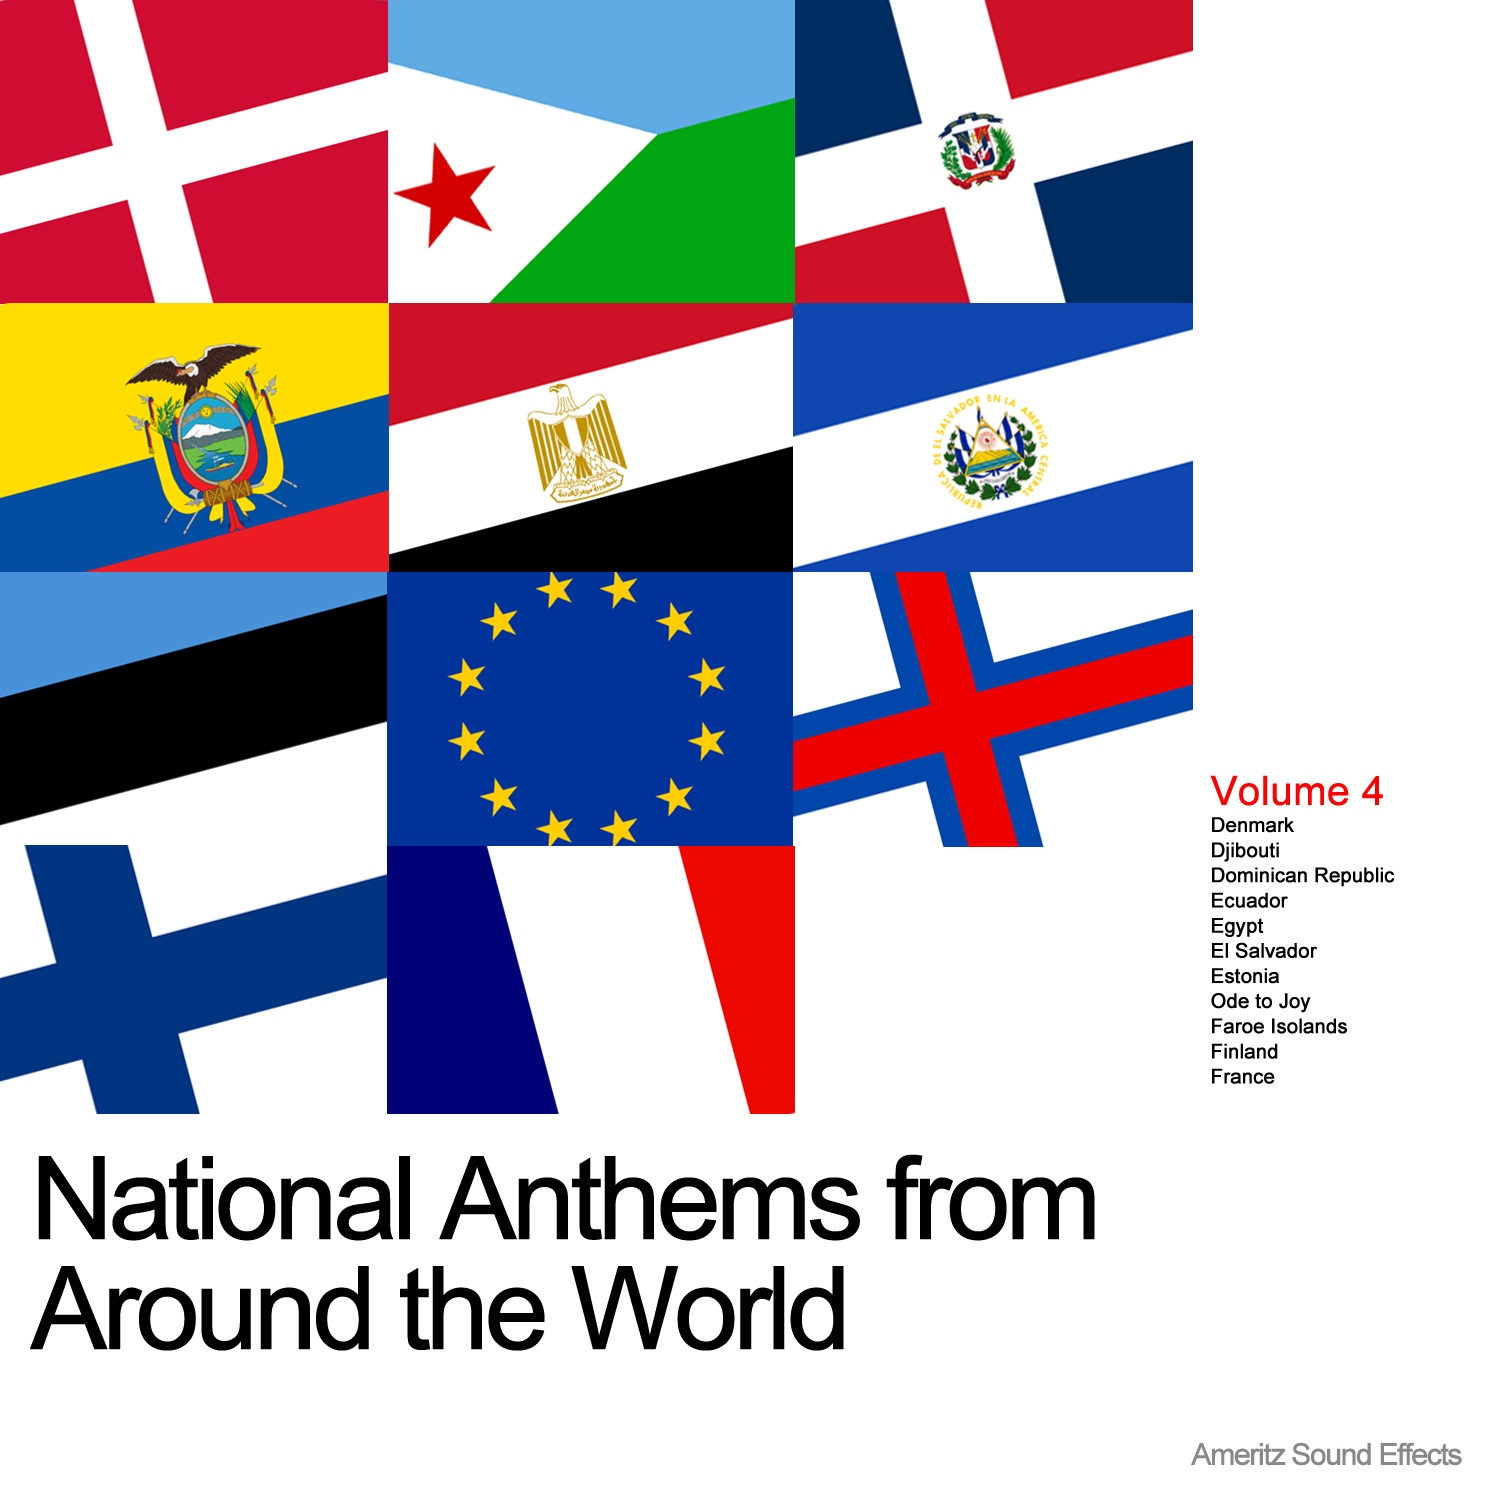 National Anthems from Around the World Vol. 4